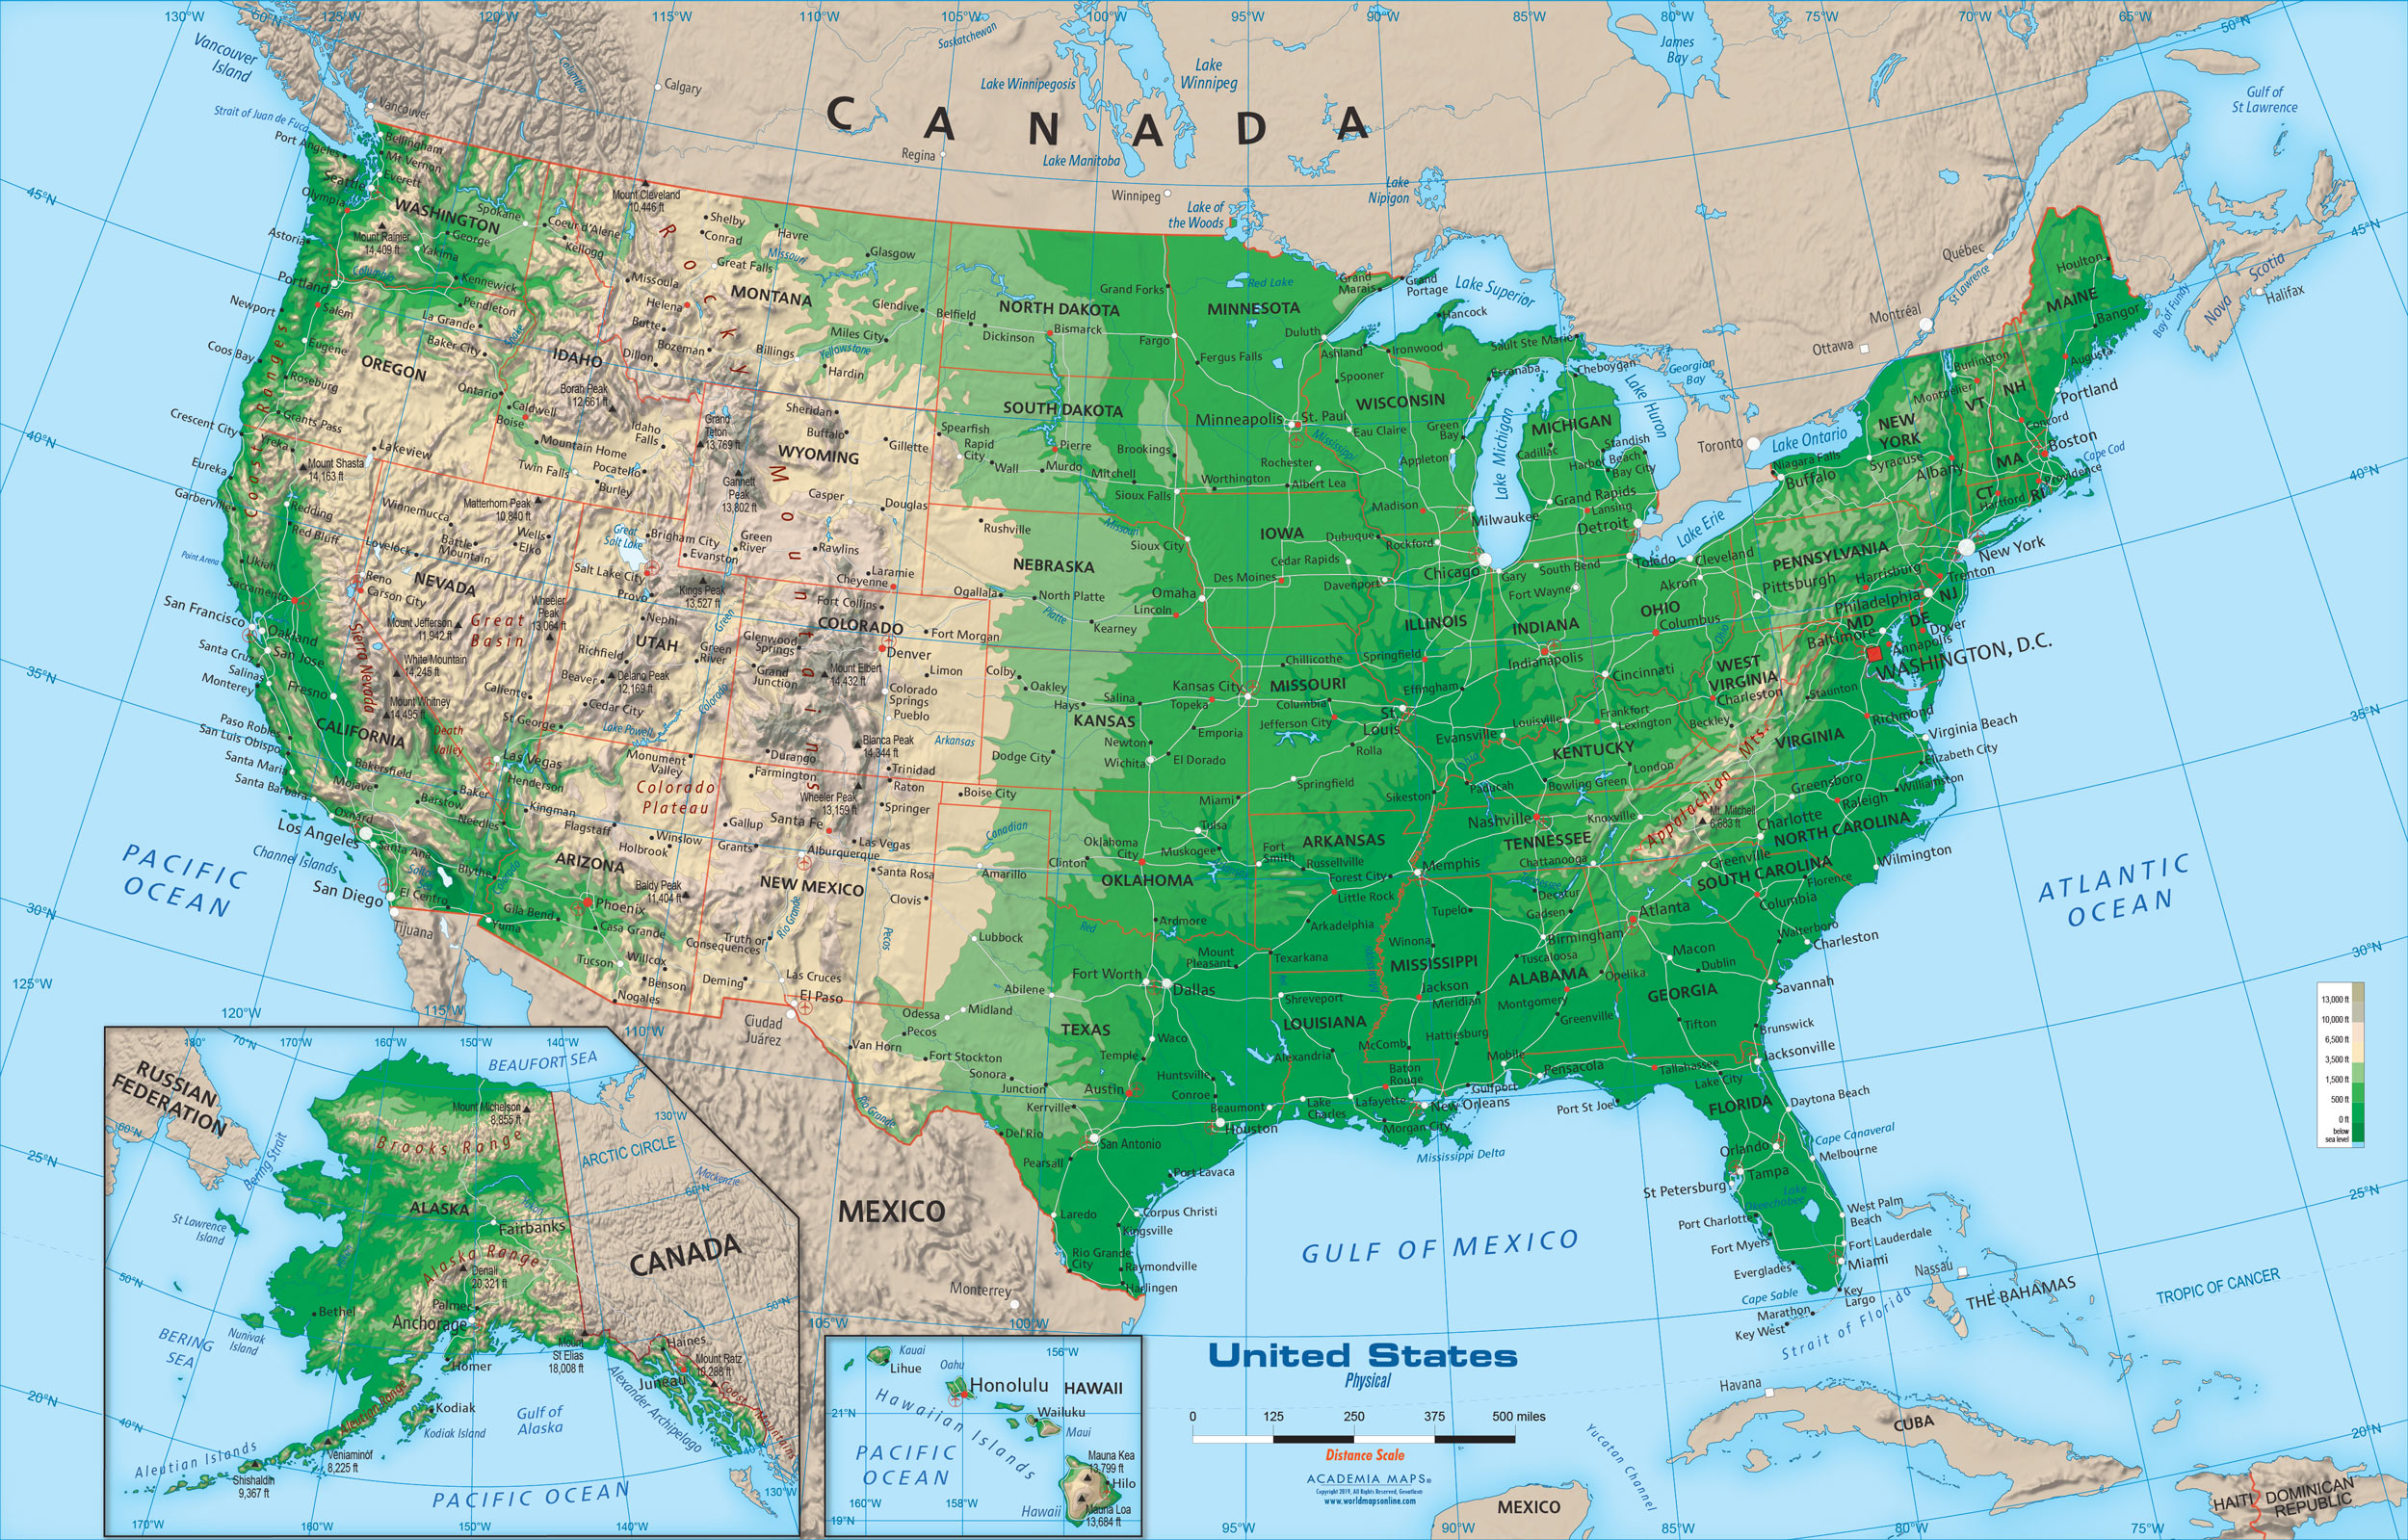 The southeast united states has a unique backdrop and history. United States Physical Map Wall Mural From Academia